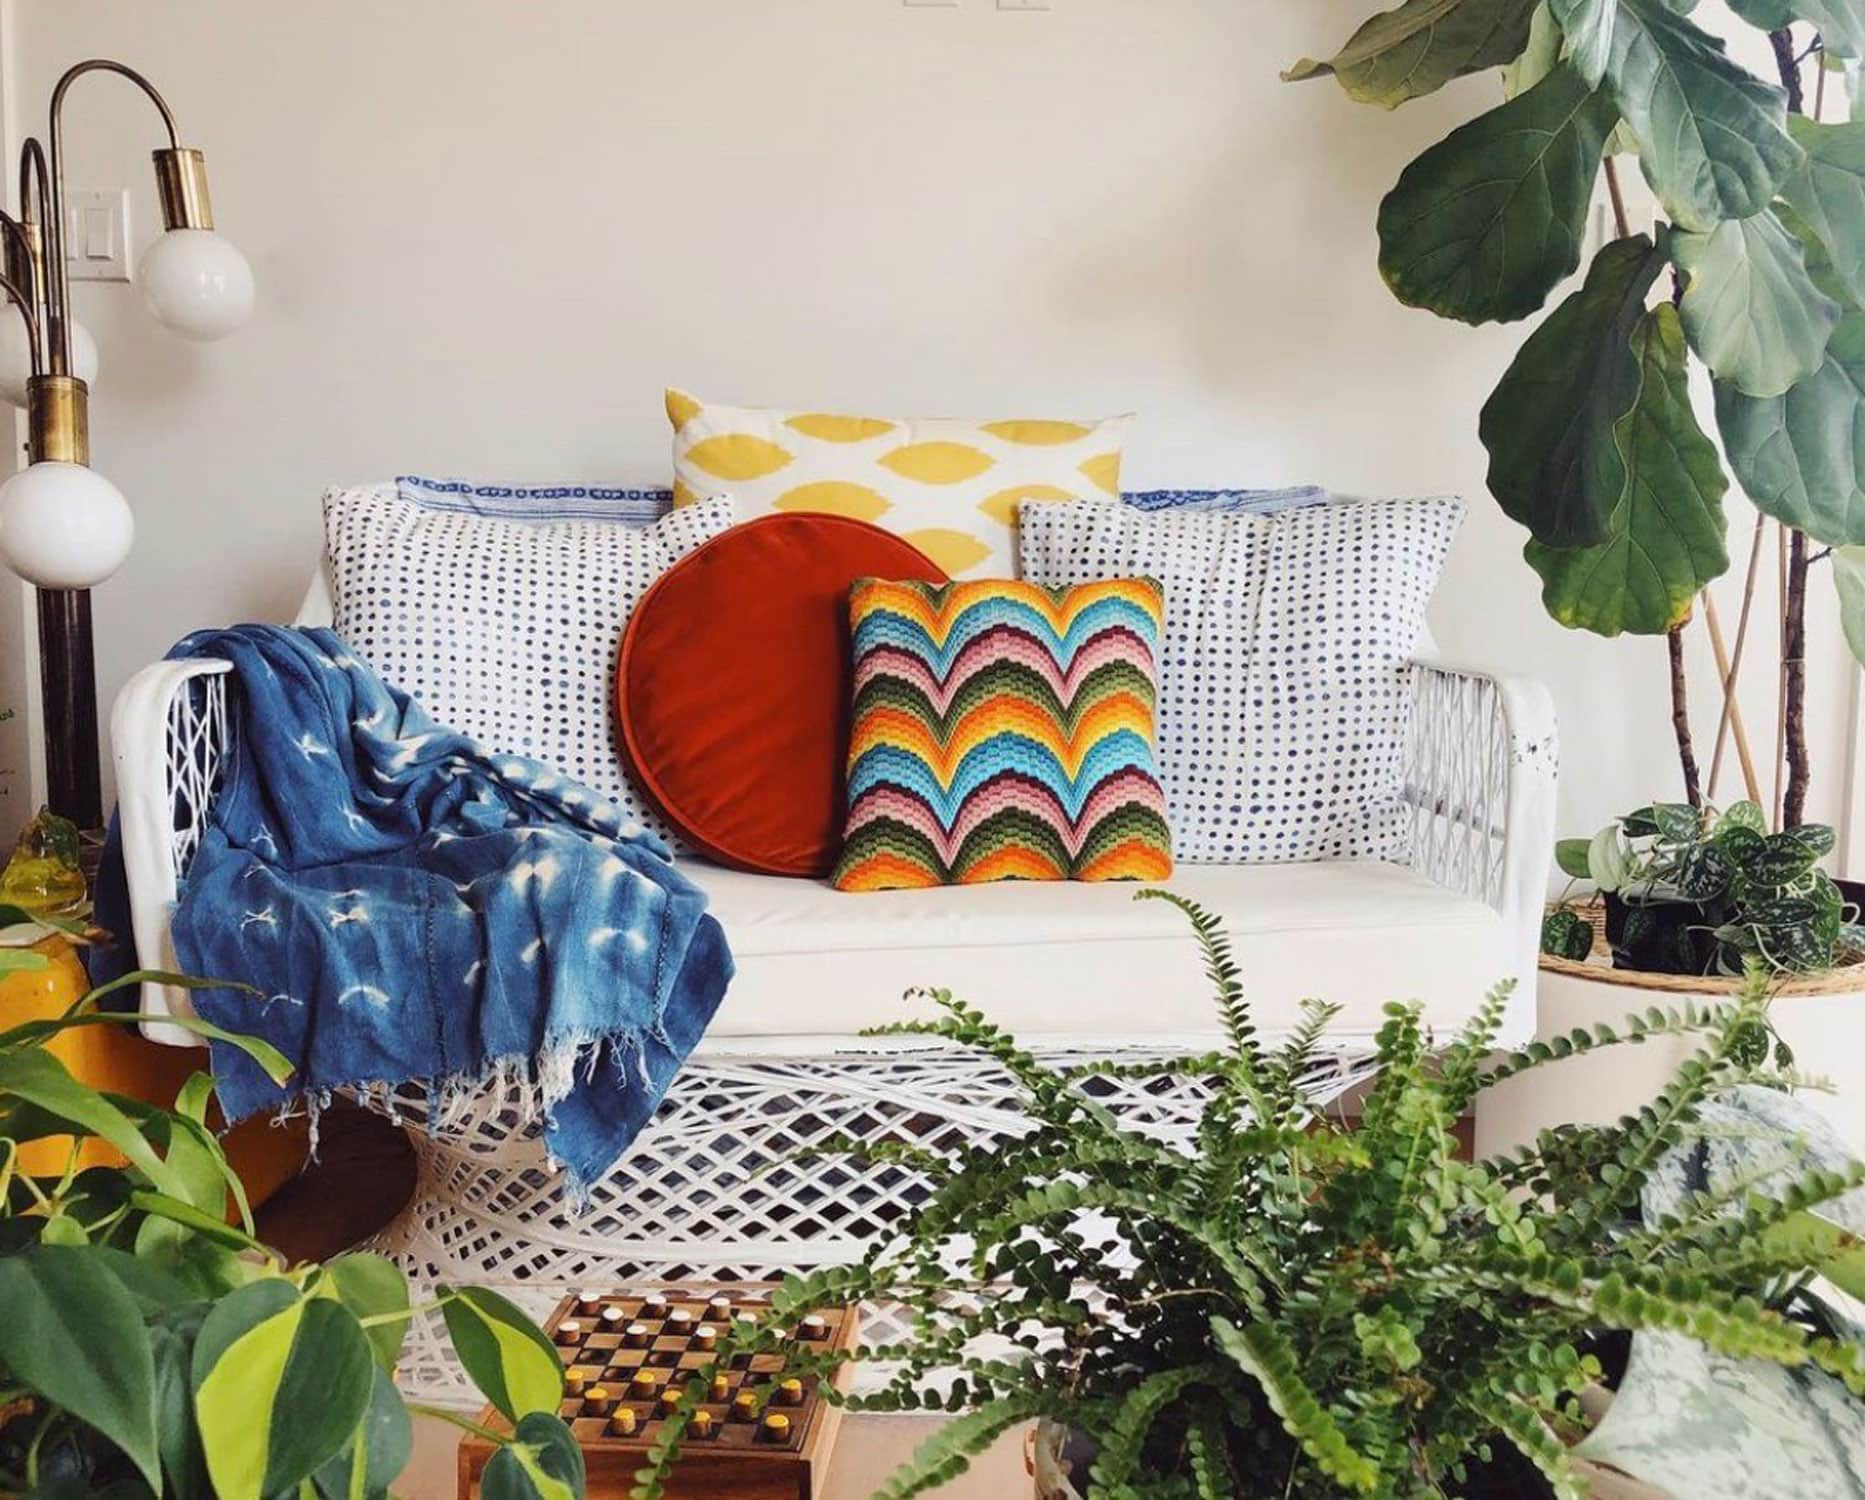 boho style sofa with pillows on wicker couch